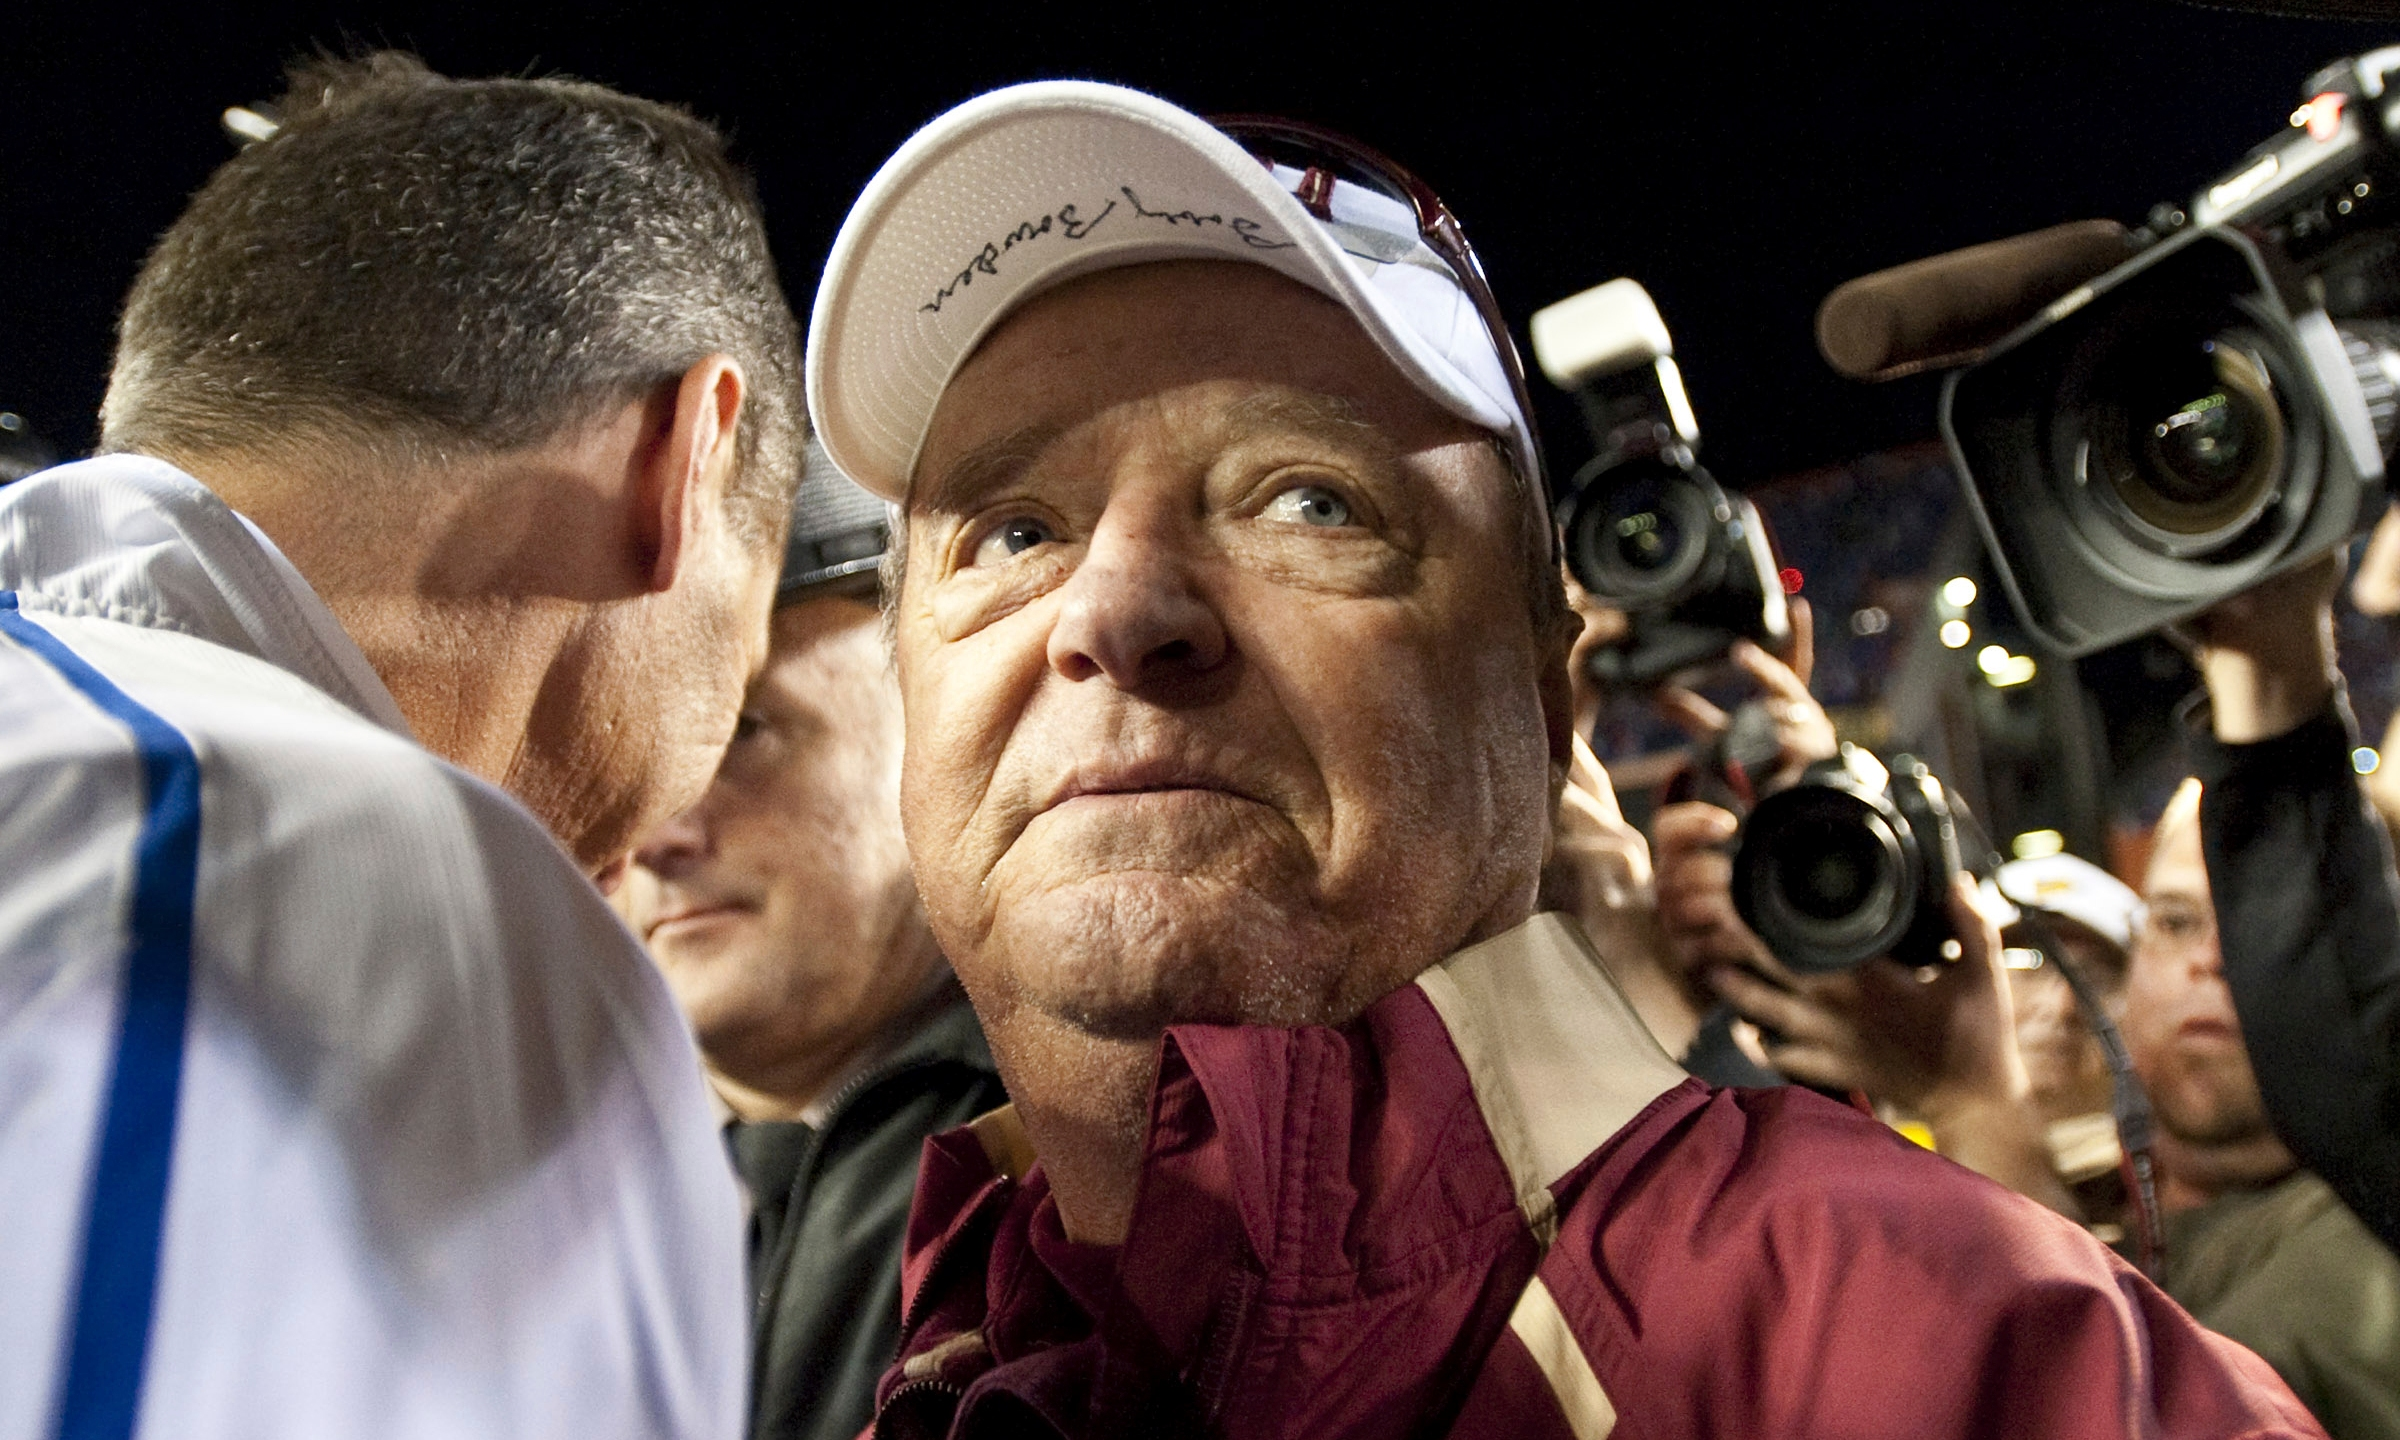 FILE - In this Saturday, Nov. 28, 2009 file photo, Florida State head football coach Bobby Bowden wears a dejected expression as he turns to leave Florida coach Urban Meyer after congratulating Meyer following Florida's 37-10 win over Florida during an NCAA football game in Gainesville ,Fla. The Hall of Fame college football coach Bobby Bowden has died after a battle with pancreatic cancer. Exuding charm and wit, Bowden led Florida State to two national championships and a record of 315-98-4 during his 34 seasons with the Seminoles. In all, Bowden had 377 wins during his 40 years in major college coaching. He was 91 years old. (AP Photo/Phil Sandlin, File)